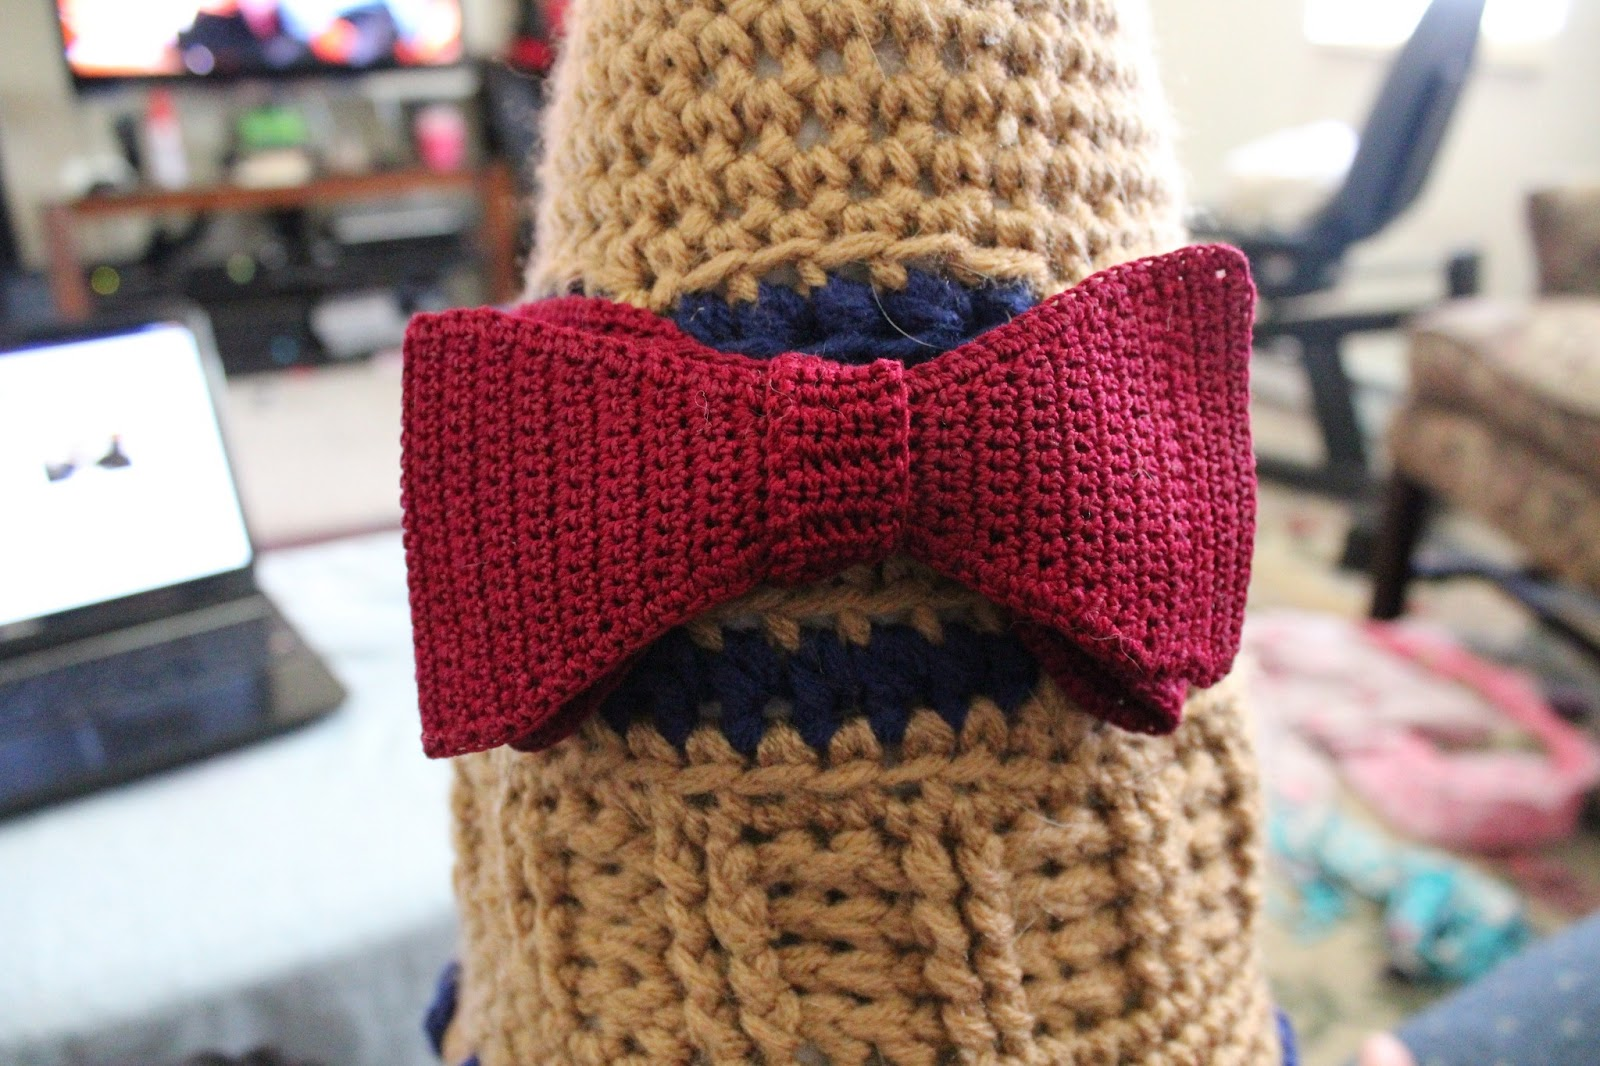 StormFly Crafts: It\'s a Crochet Bow Tie - I Crochet Bow Ties Now ...